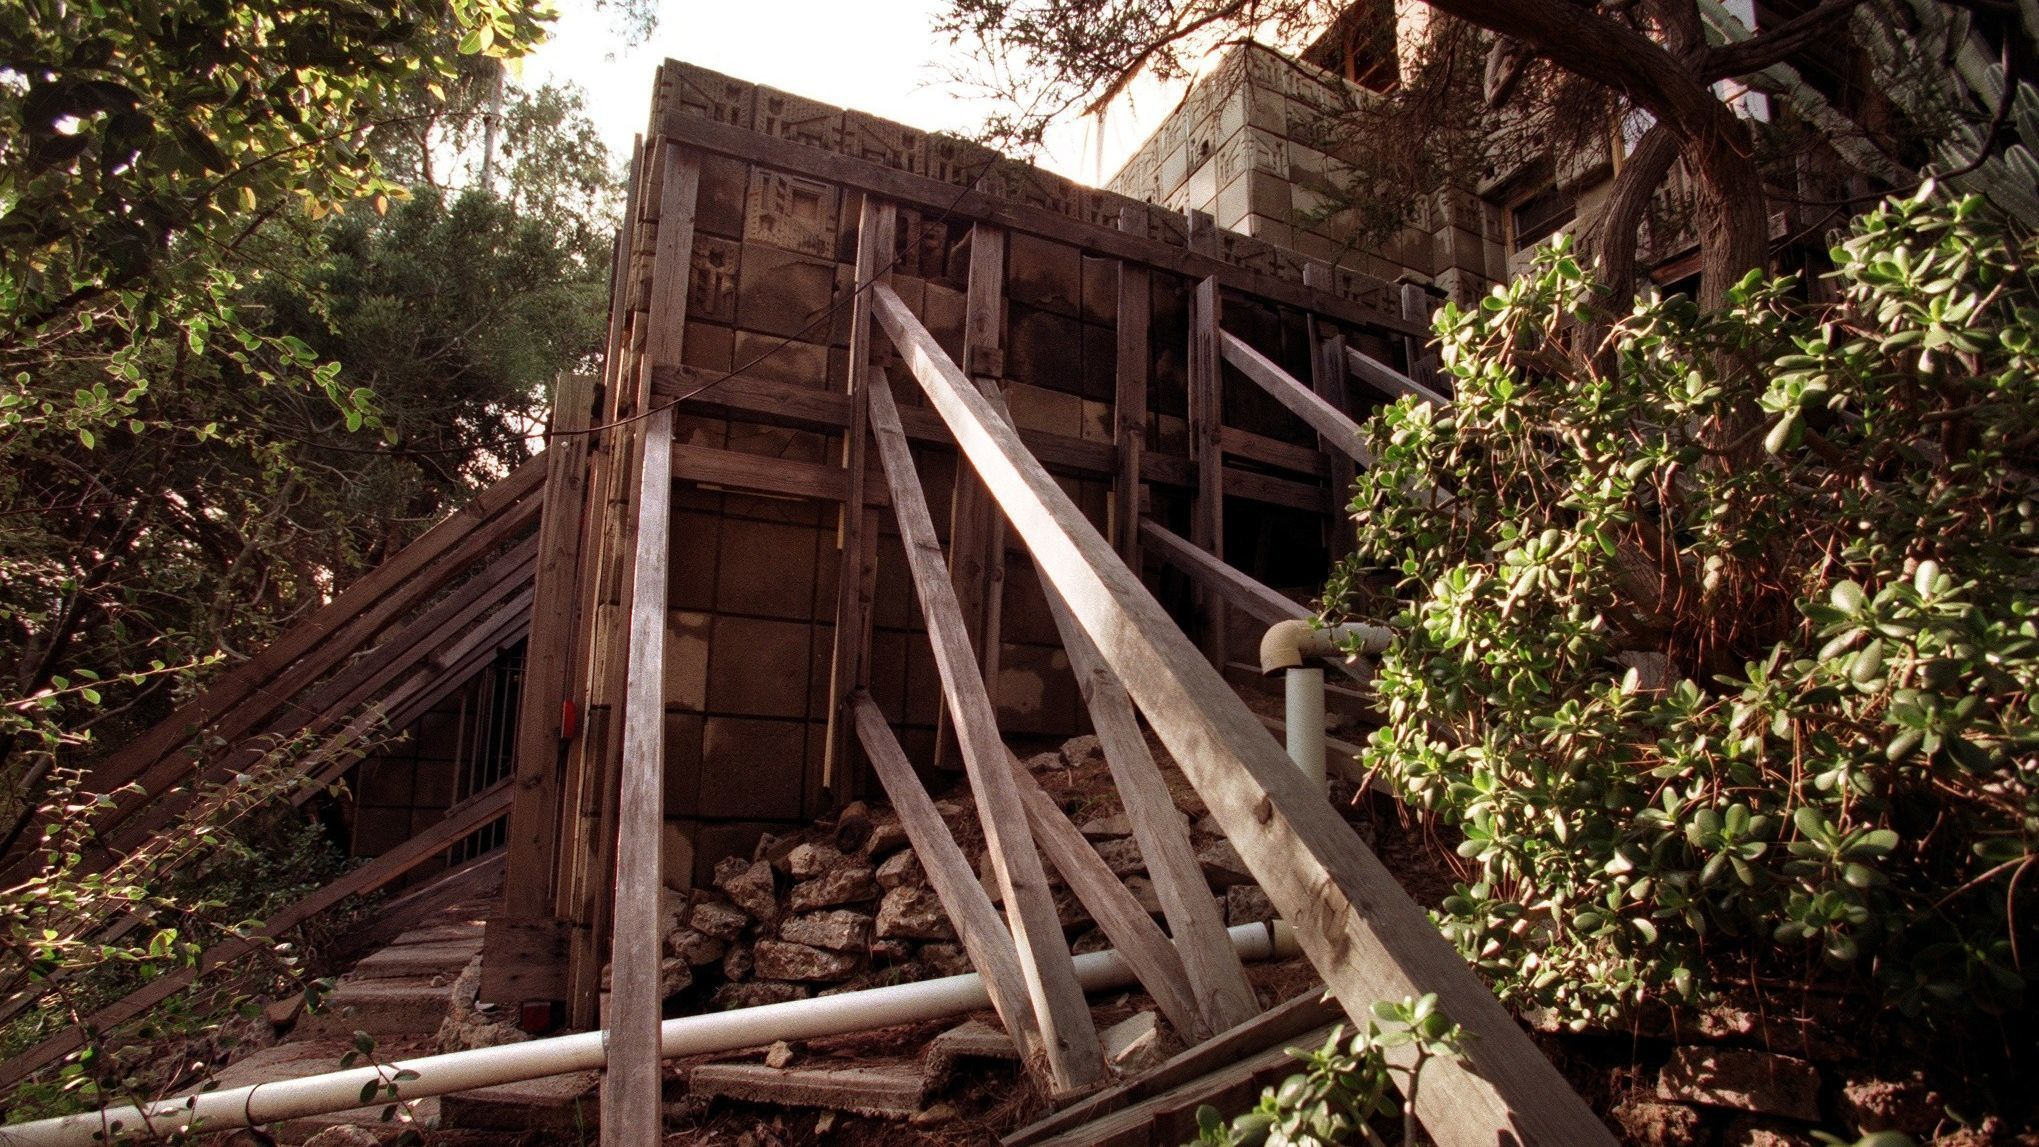 Freeman House after the Northridge earthquake